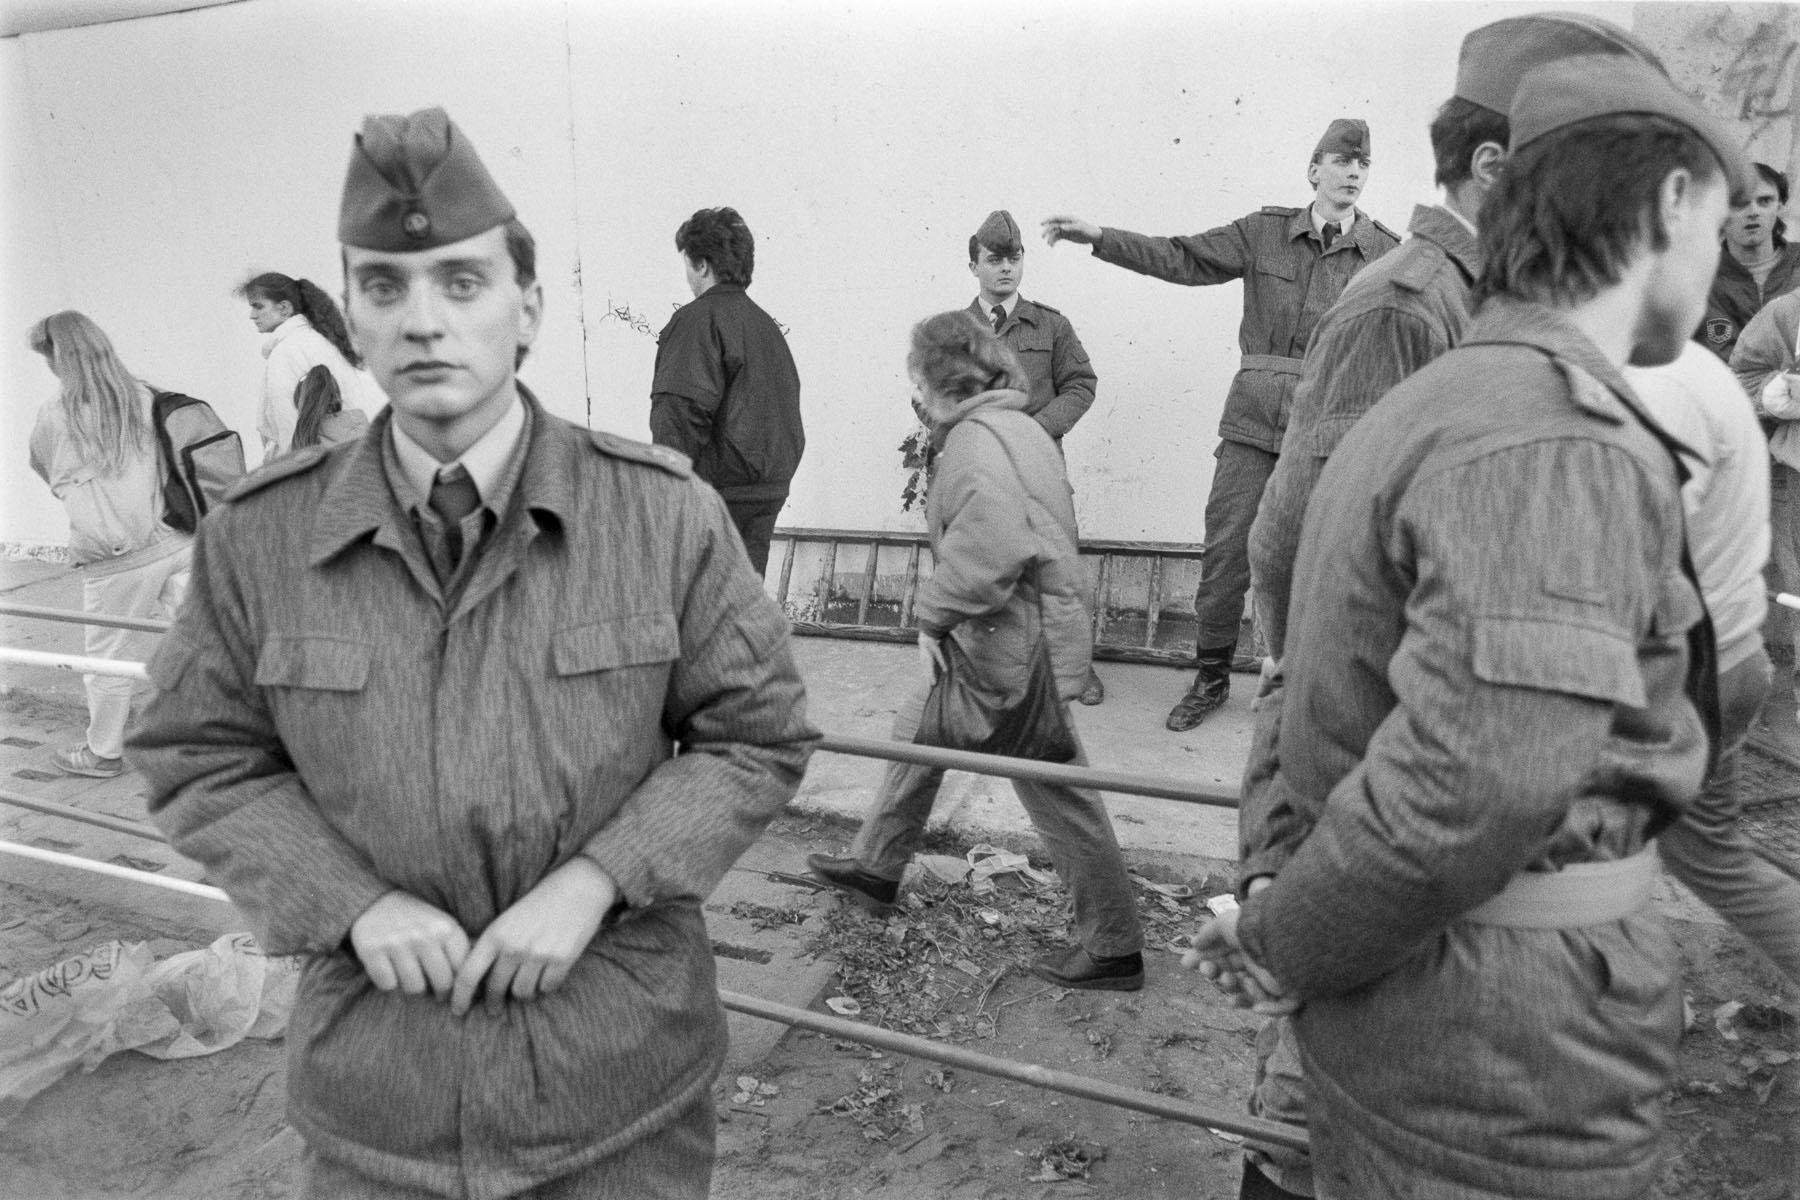 East Berliners cross a check-point in front of East German soldiers on November 11, 1989